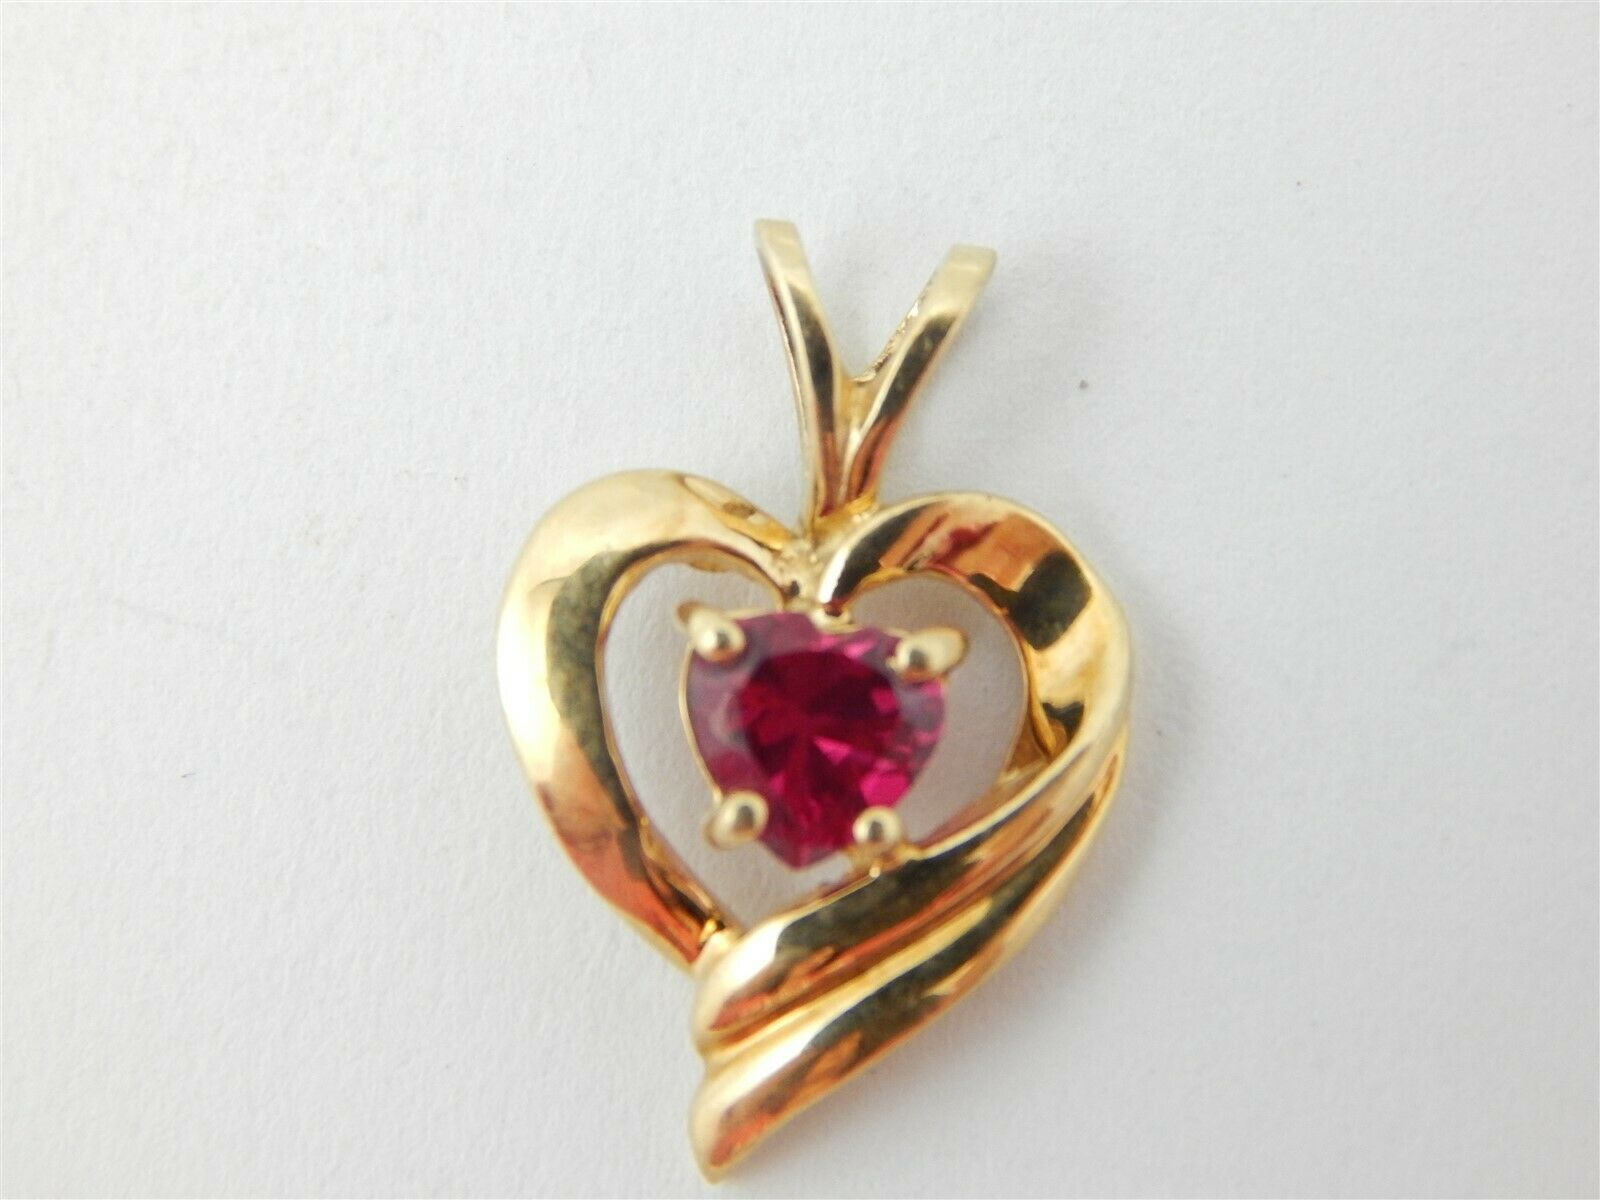 10k Yellow gold Heart Shaped Created Ruby .44 Carat Pendant Gift Box Included